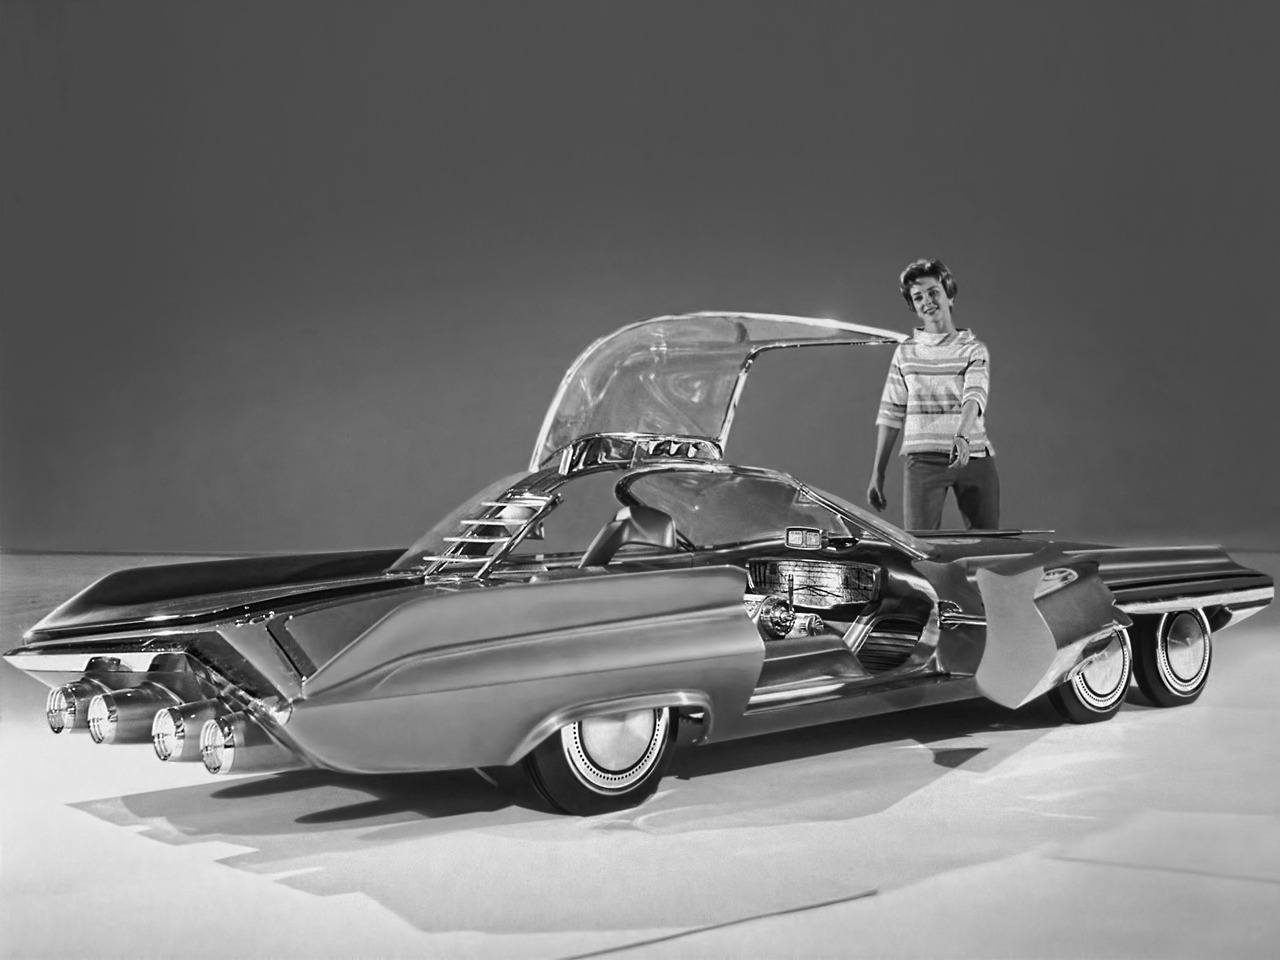 ford_seattle-ite_xxi_concept_car_2 ford_seattle-ite_xxi_conceptcar_1 Ford_Seattle_ite_XXI_1 Ford_Seattle_ite_XXI_2 Ford_Seattle_ite_XXI_3 ... & Ford Seattle-Ite XXI Concept Car (1962) u2013 Old Concept Cars markmcfarlin.com